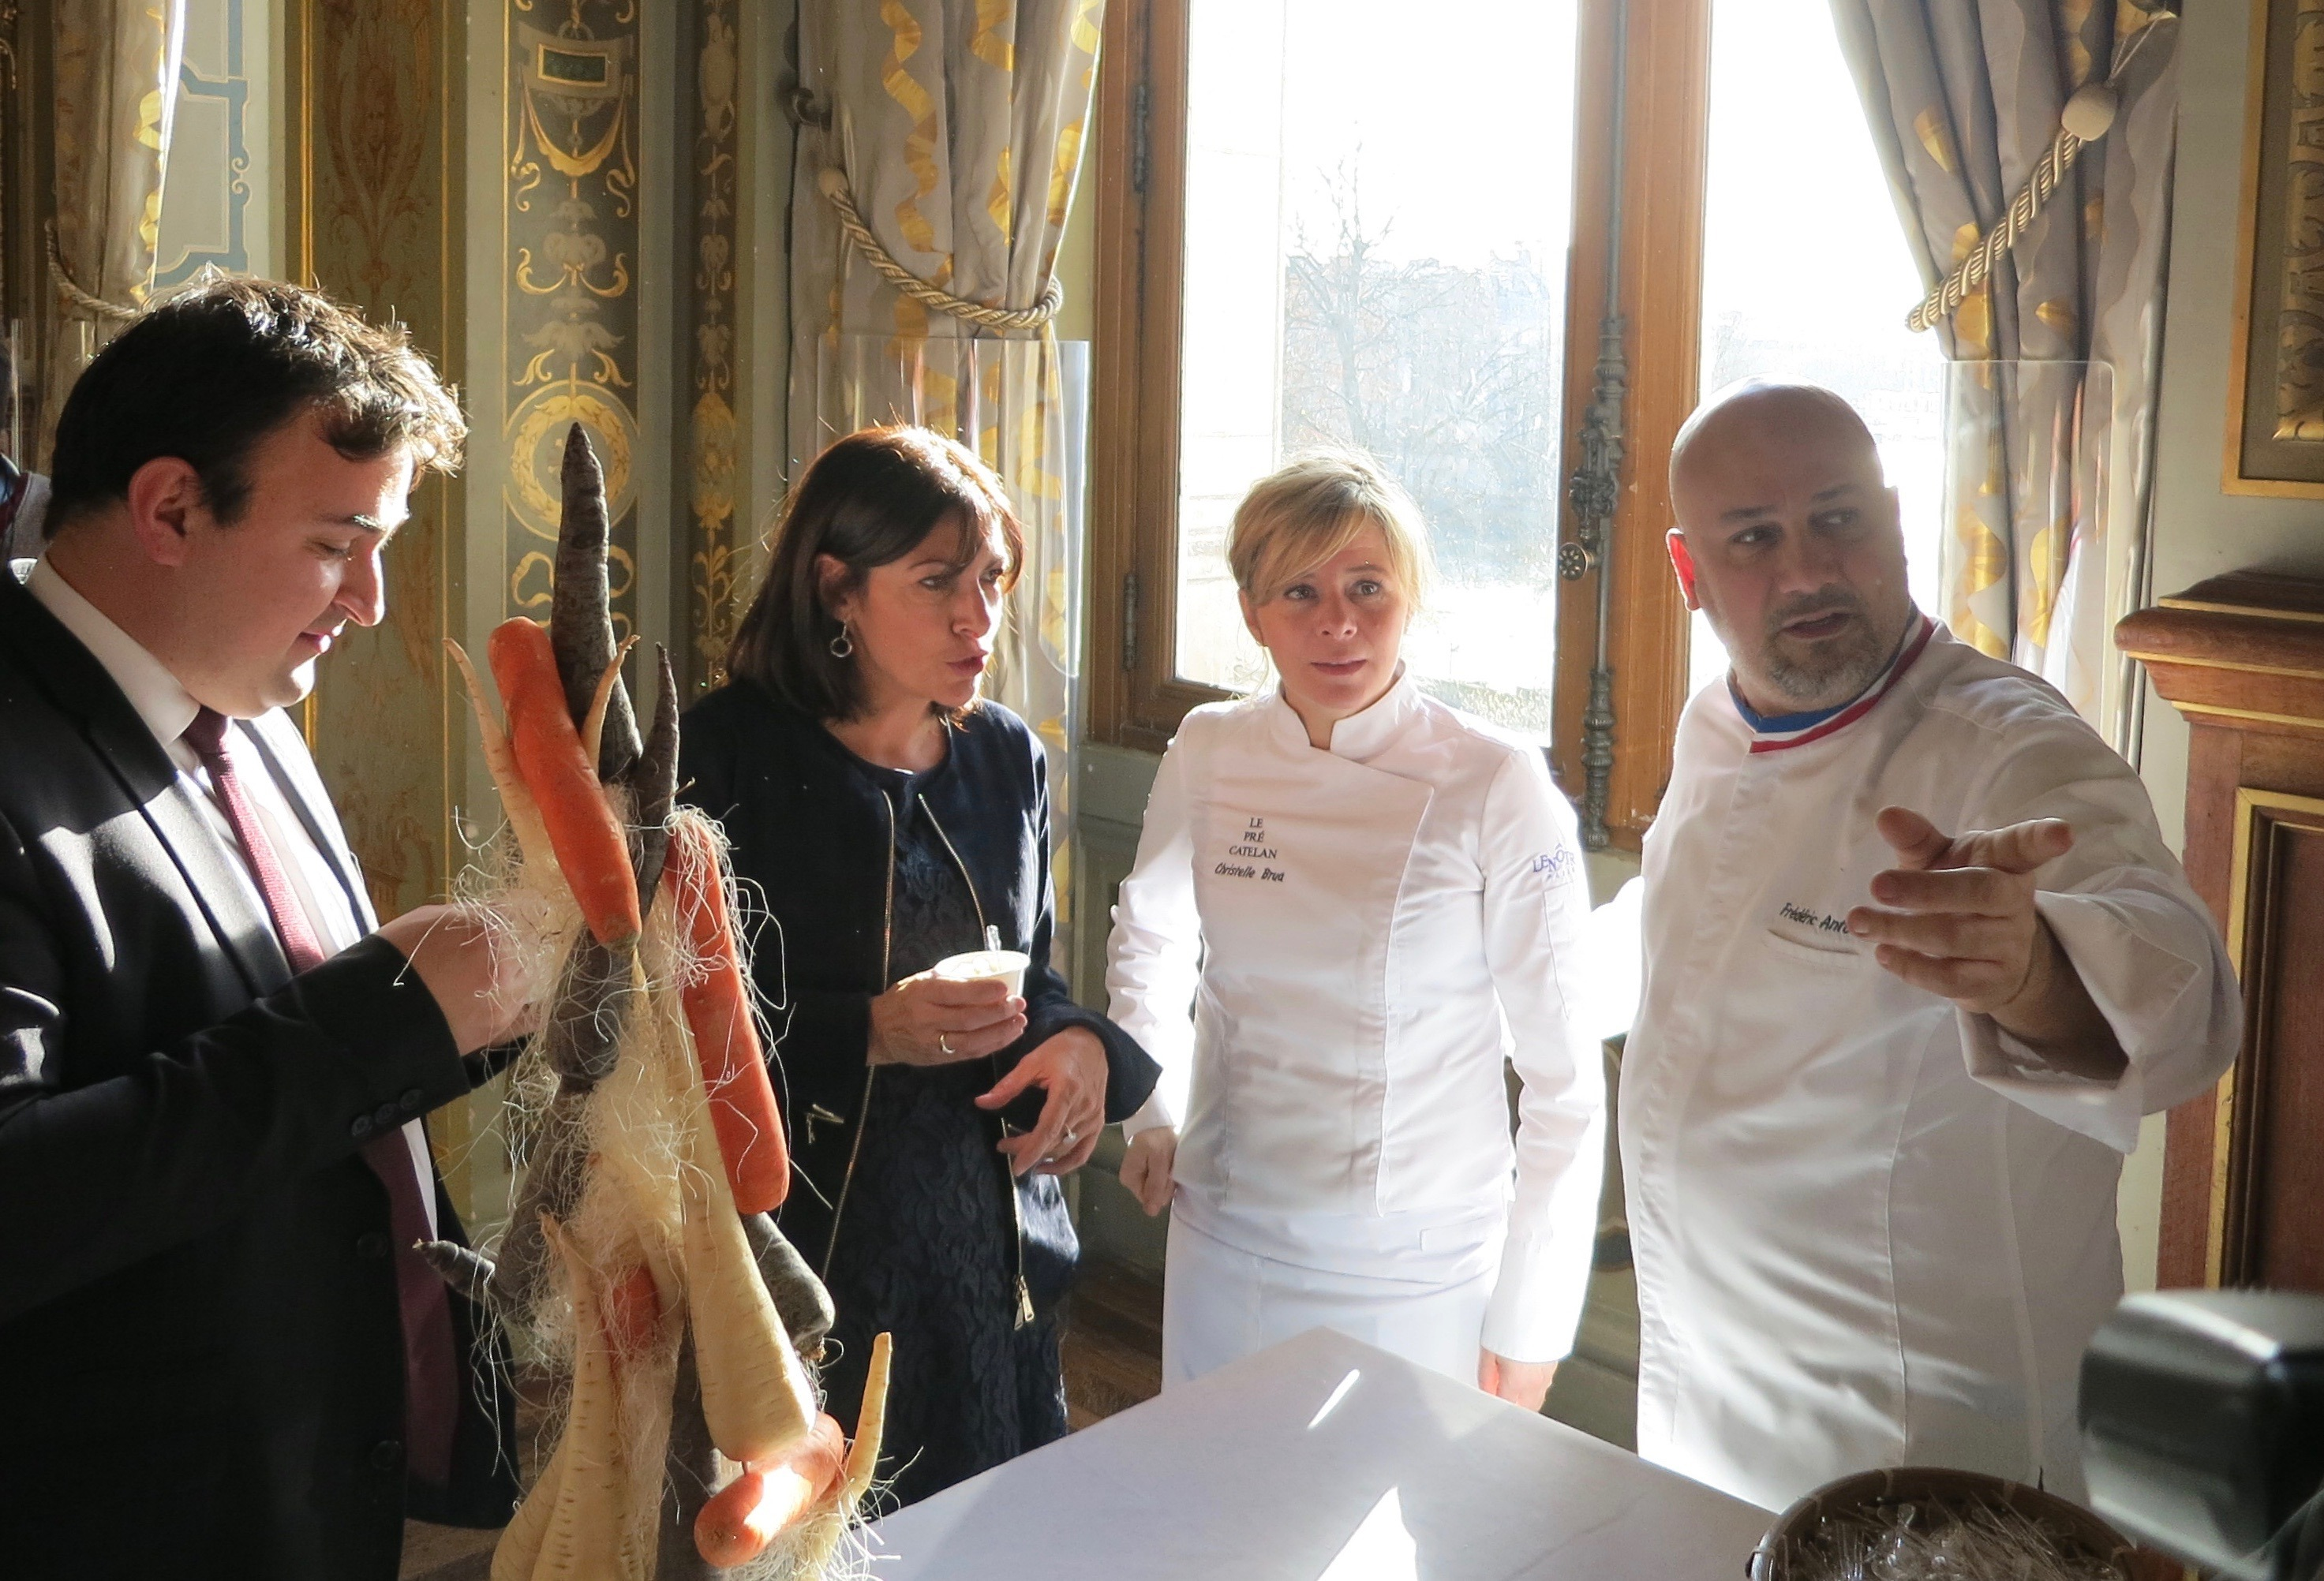 Paris Mayor Anne Hildago Meeting the Chefs